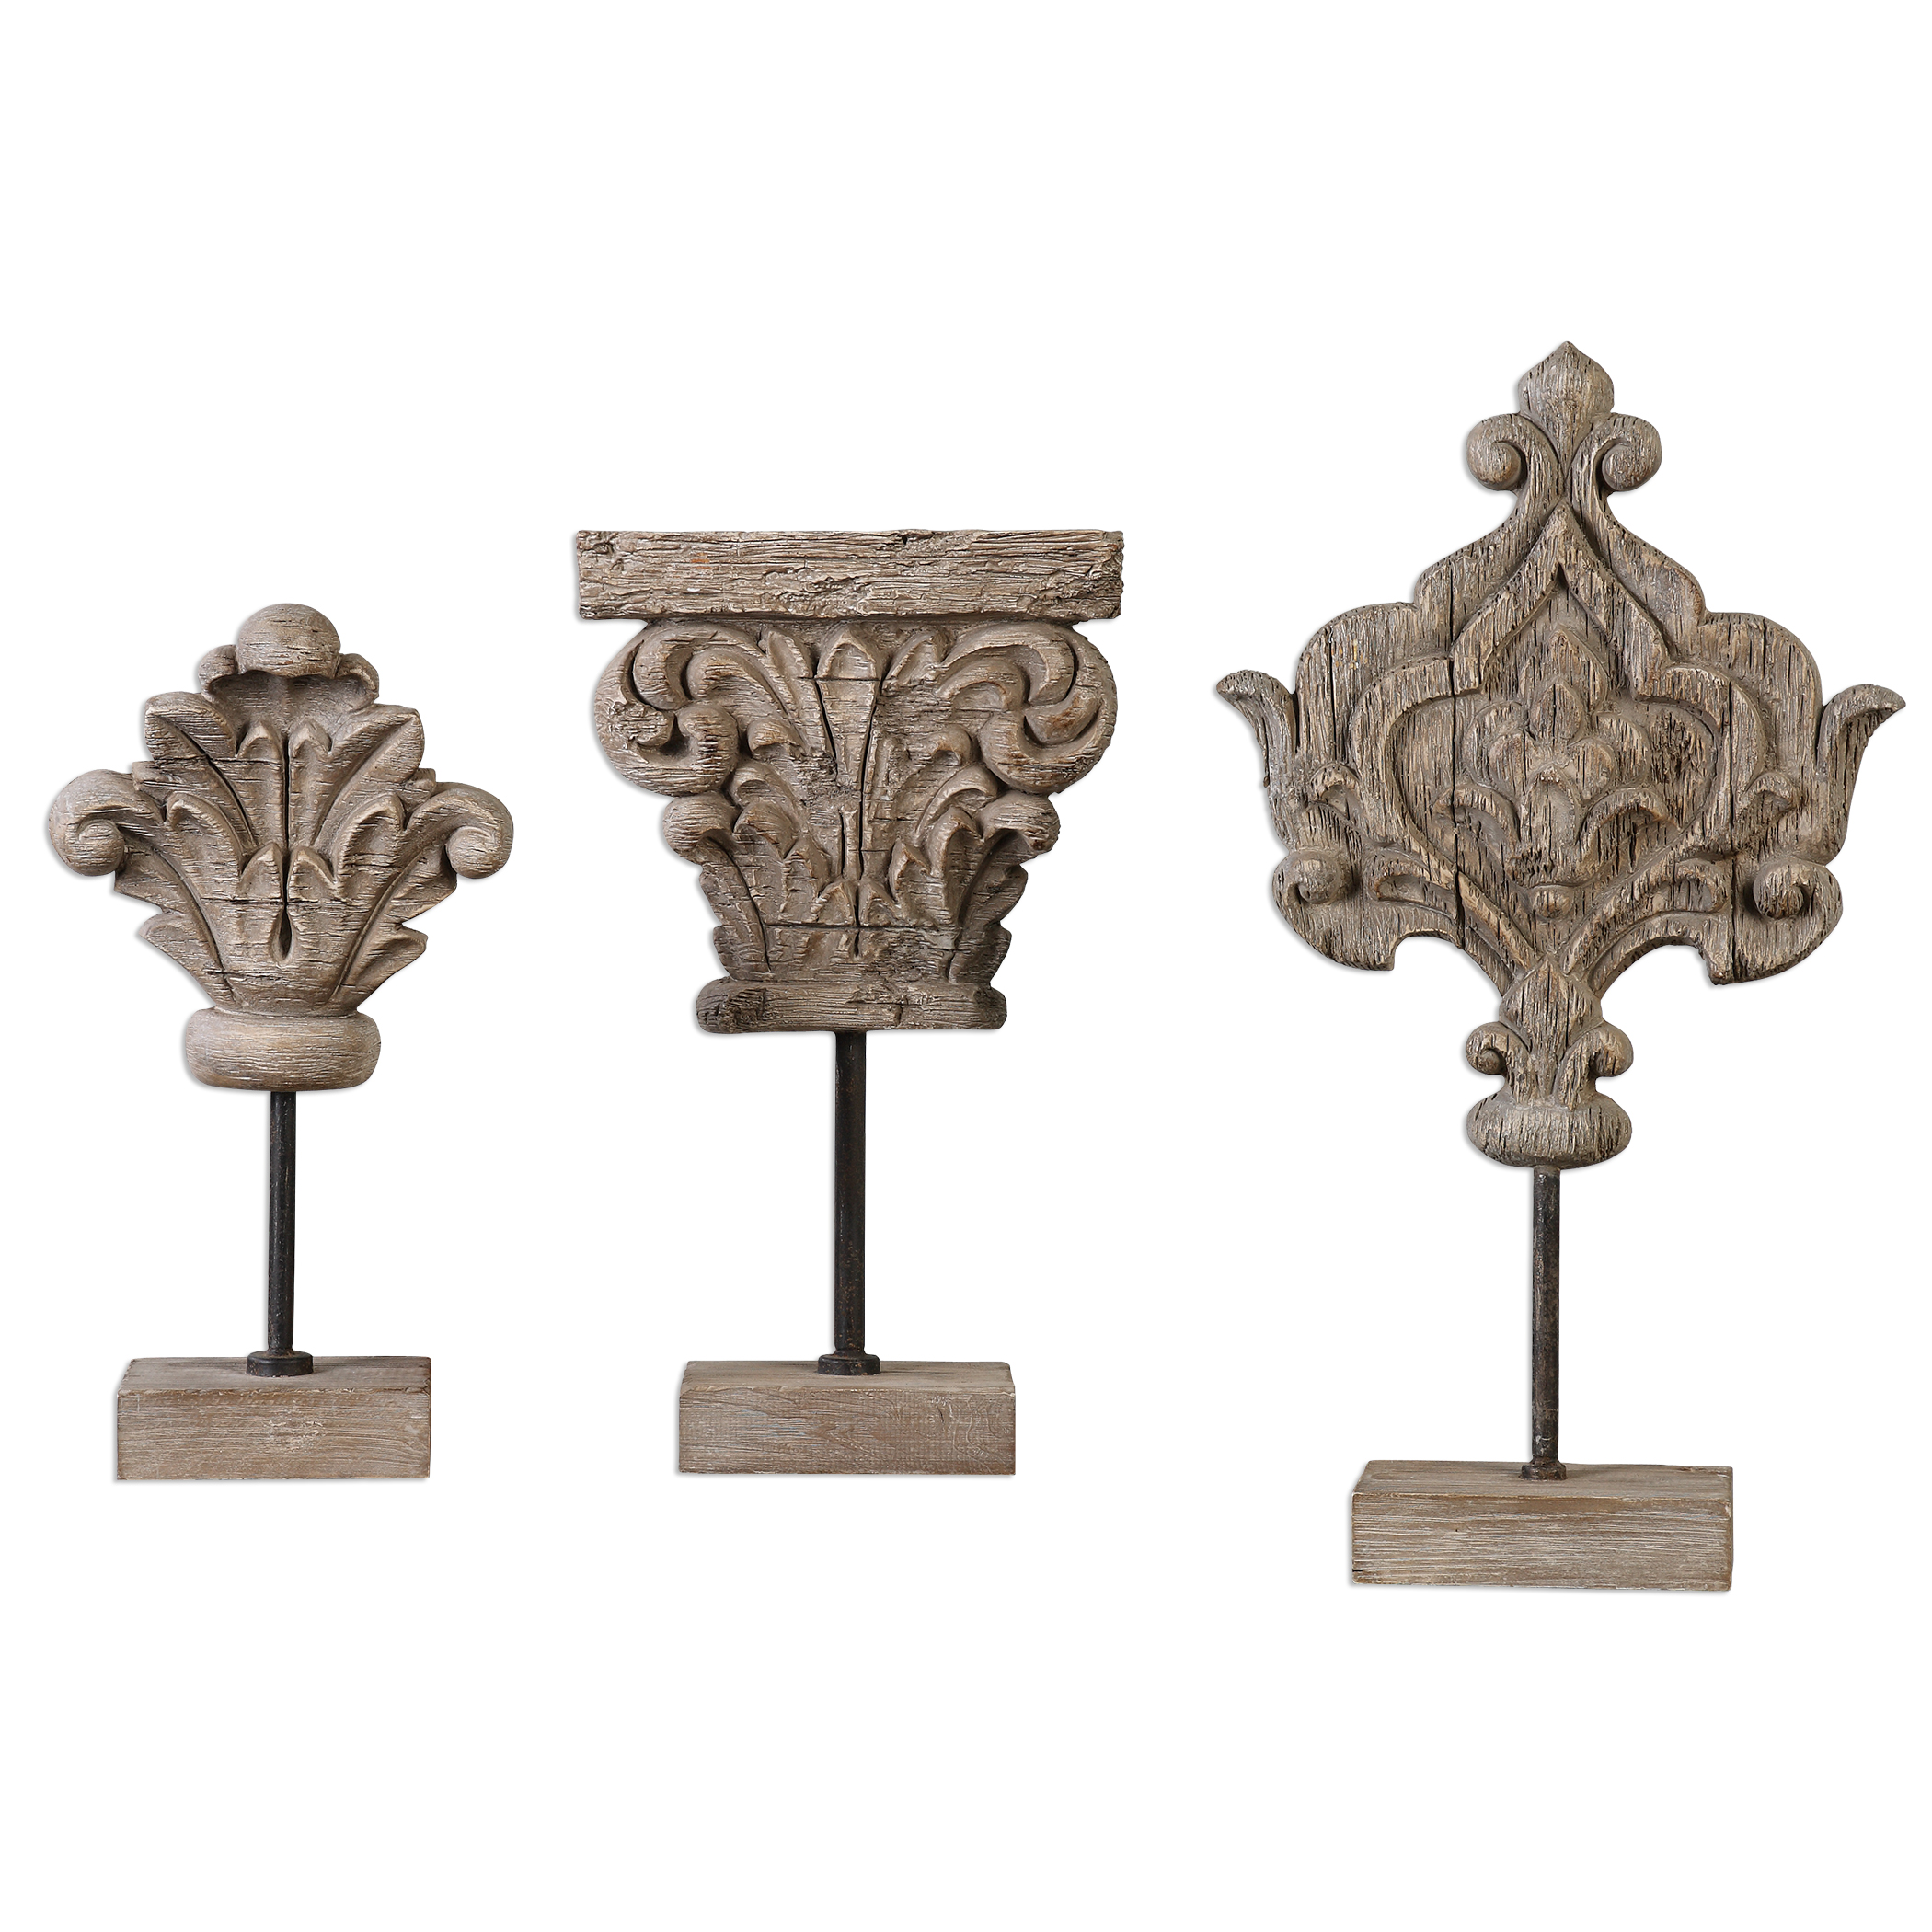 Uttermost Accessories Marta Wood Sculptures, S/3 - Item Number: 20054